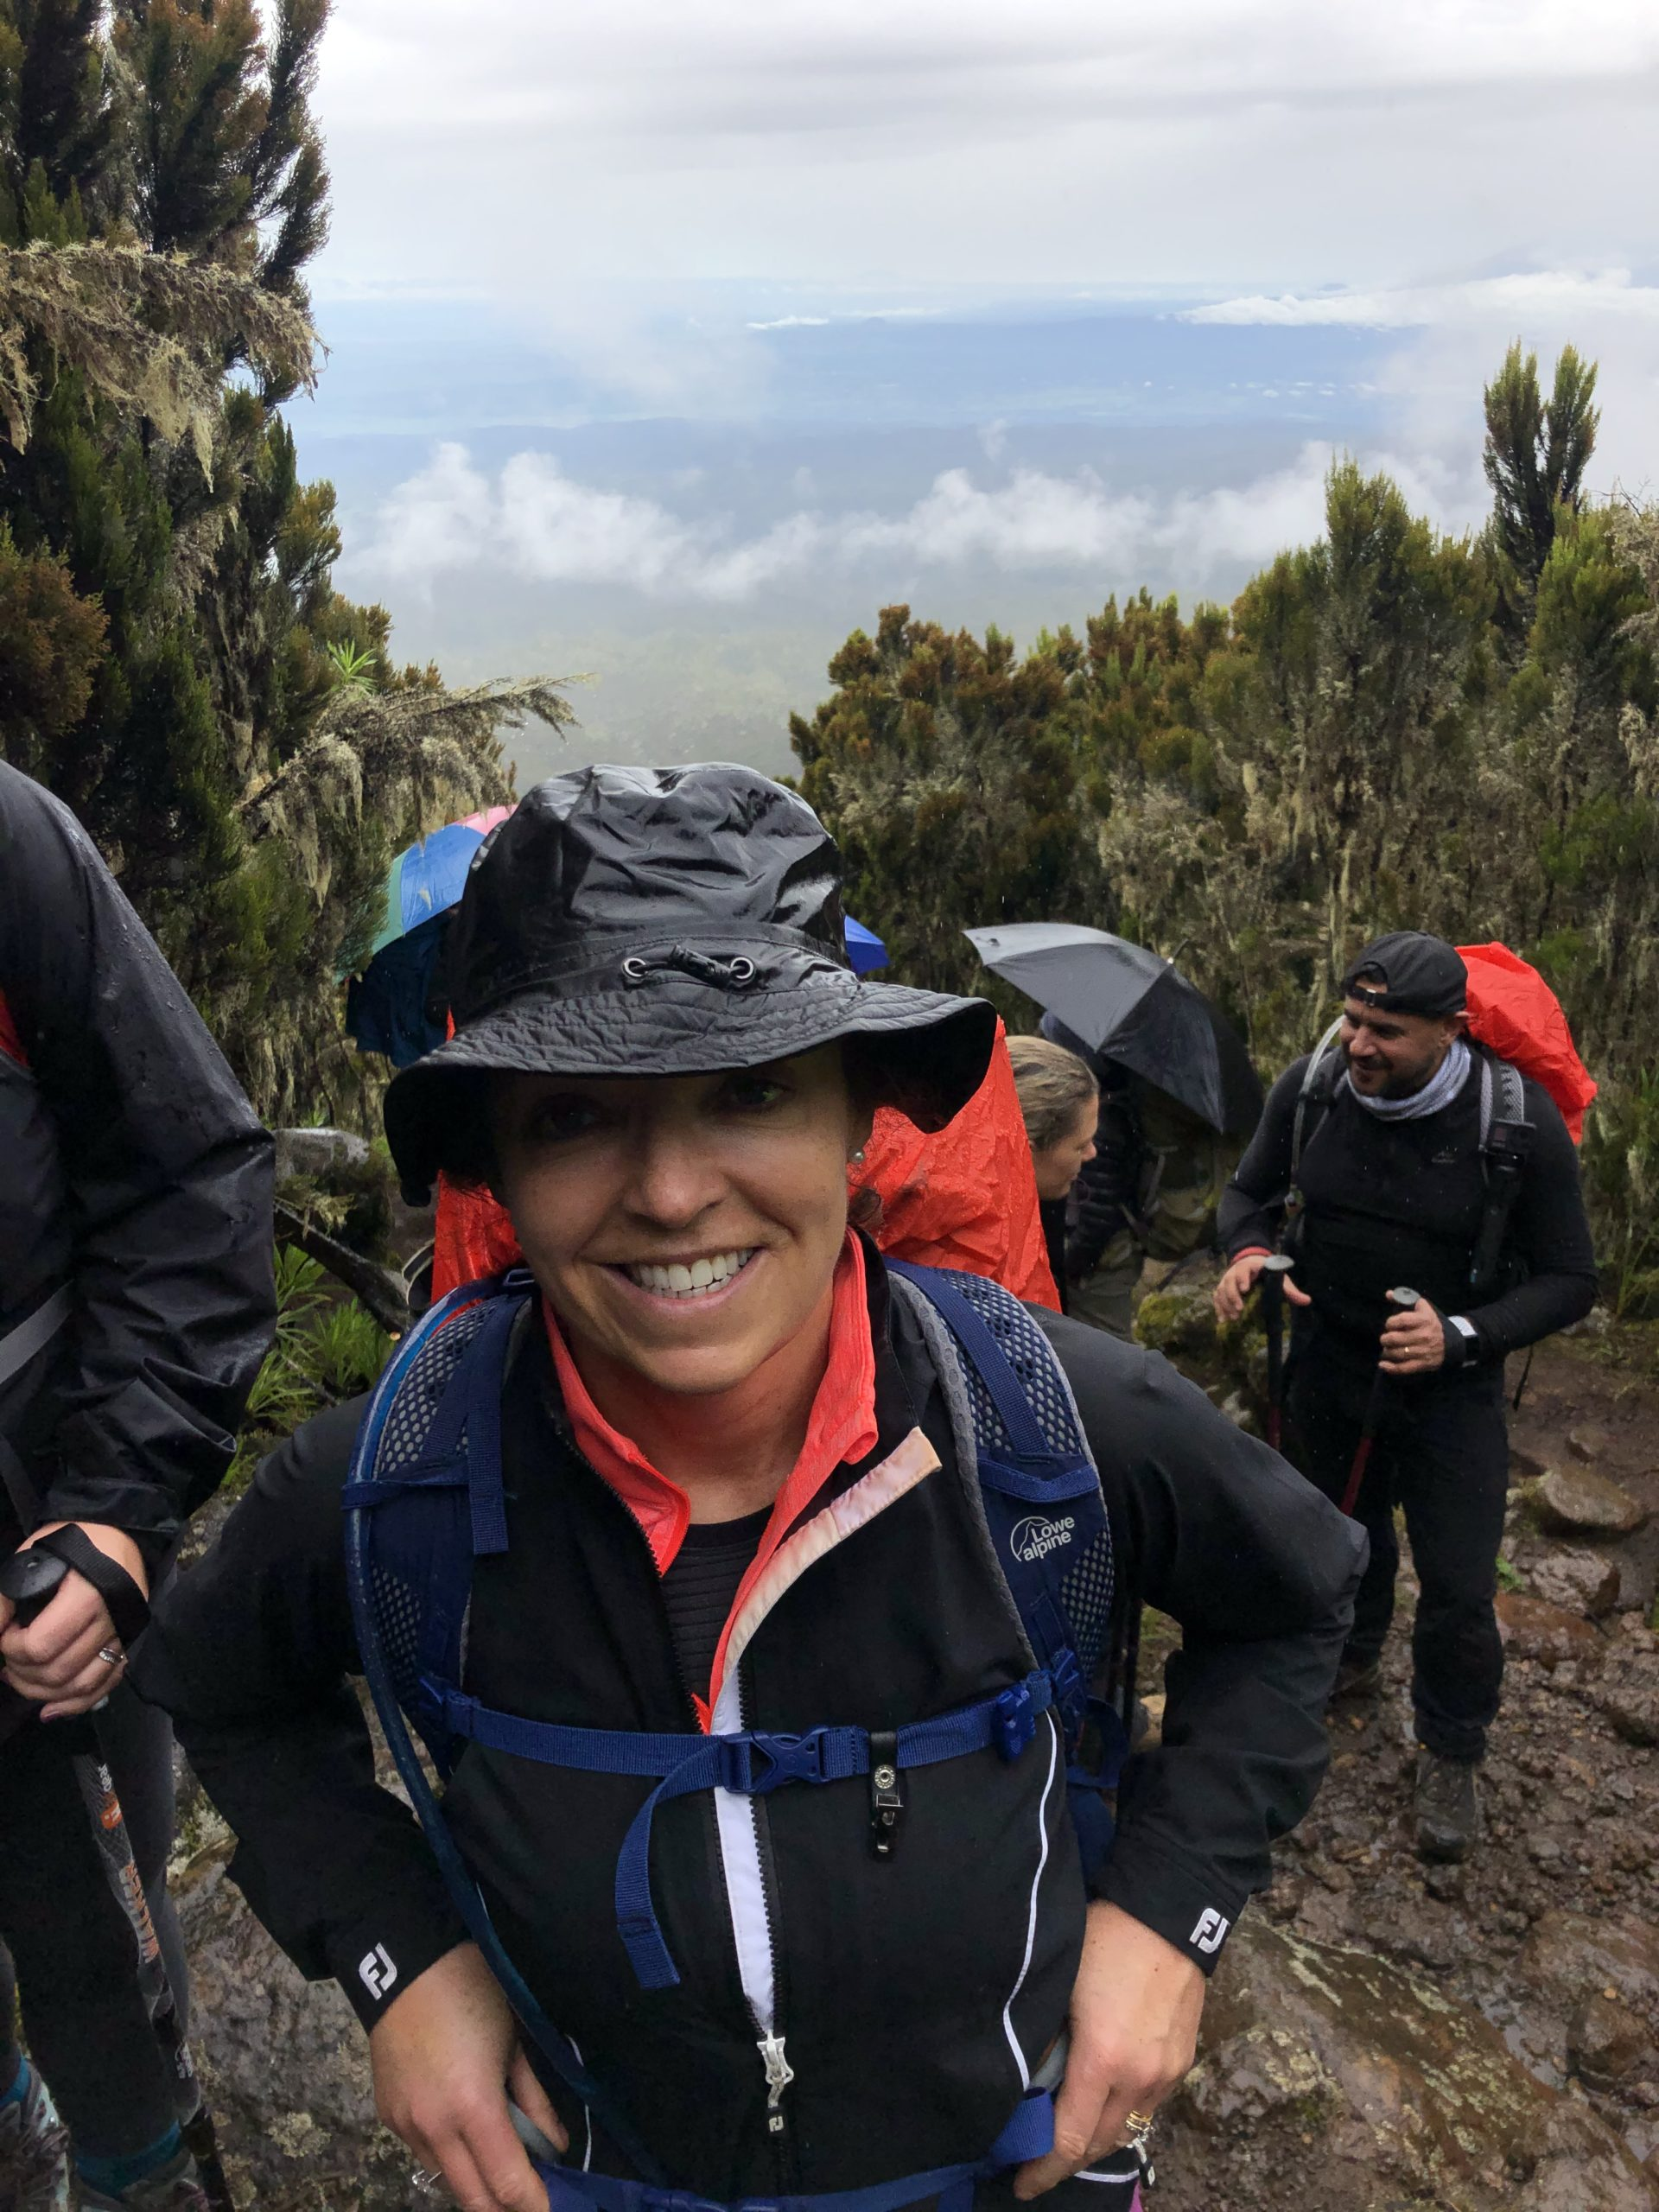 Mount Kilimanjaro Trek - Adventure Tour with Sunway